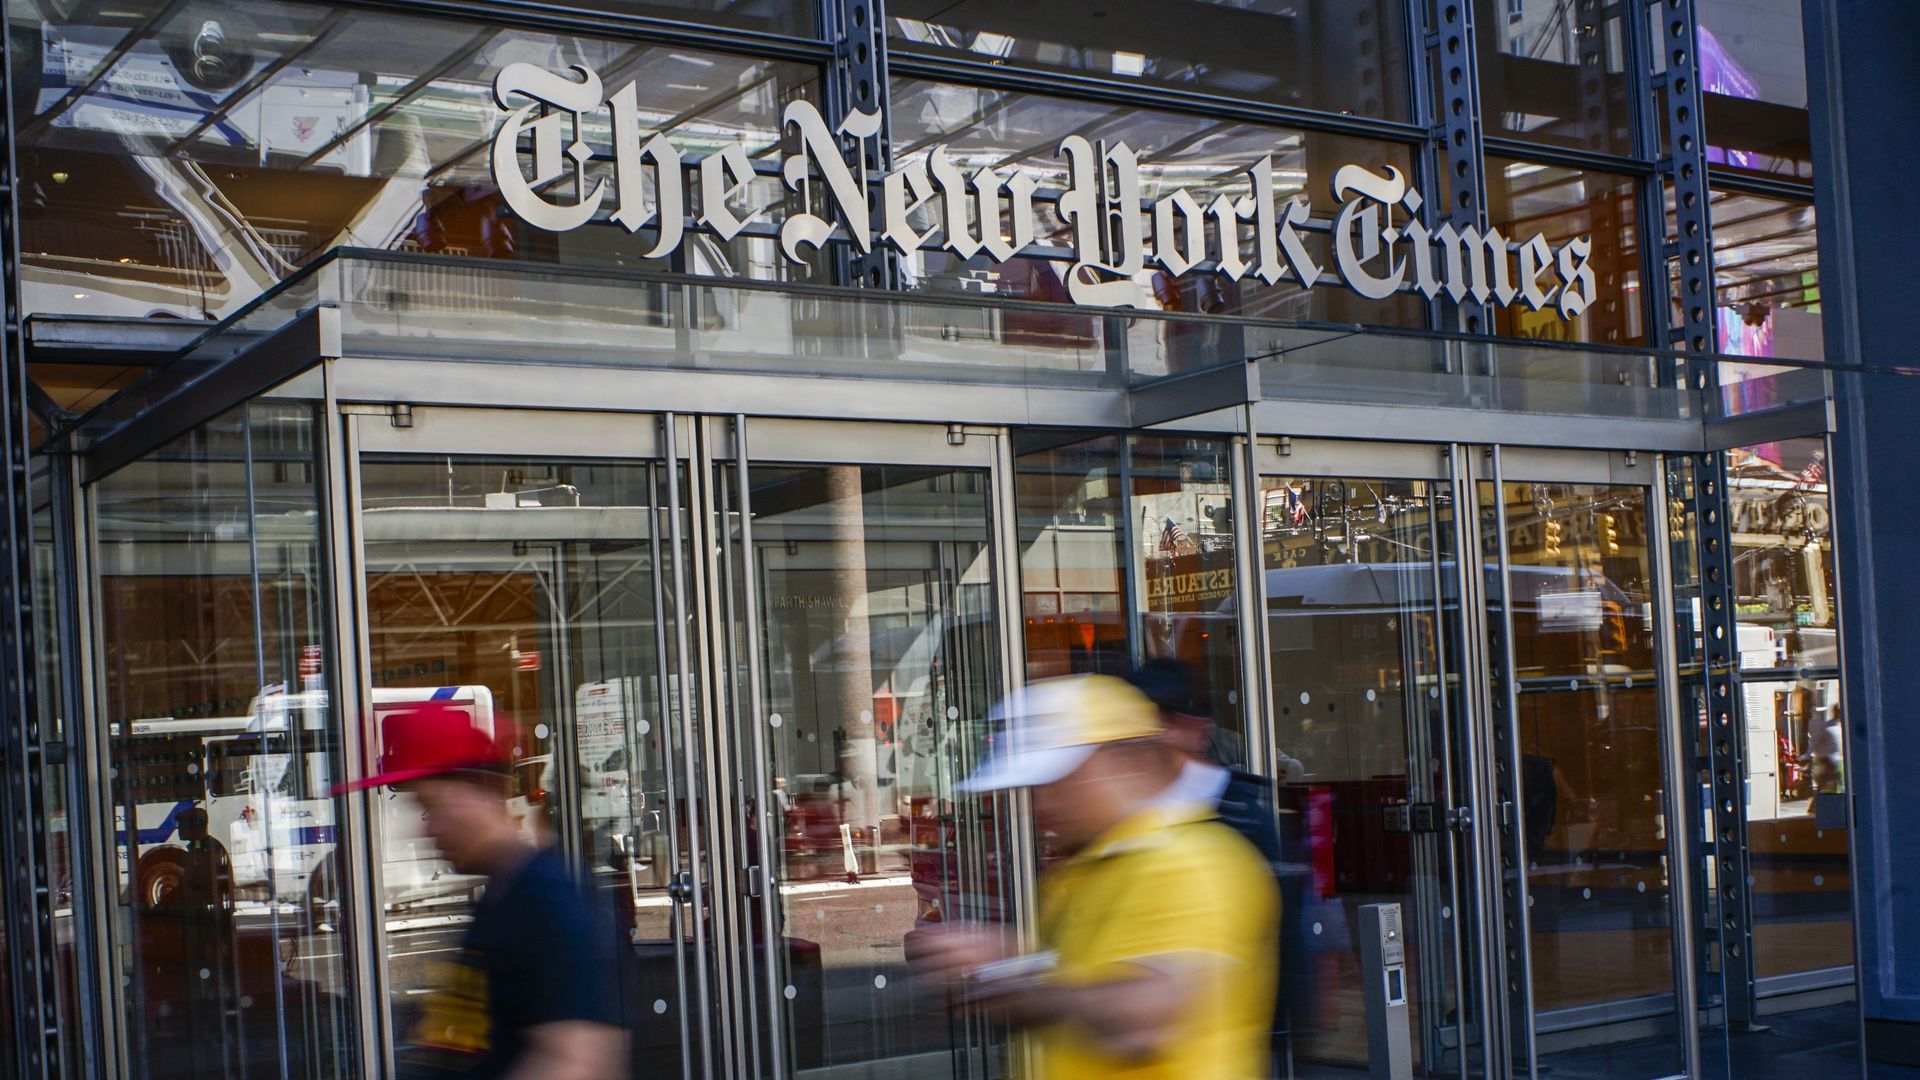 New York Times Stops Using Facebook Twitter Pixels To Track